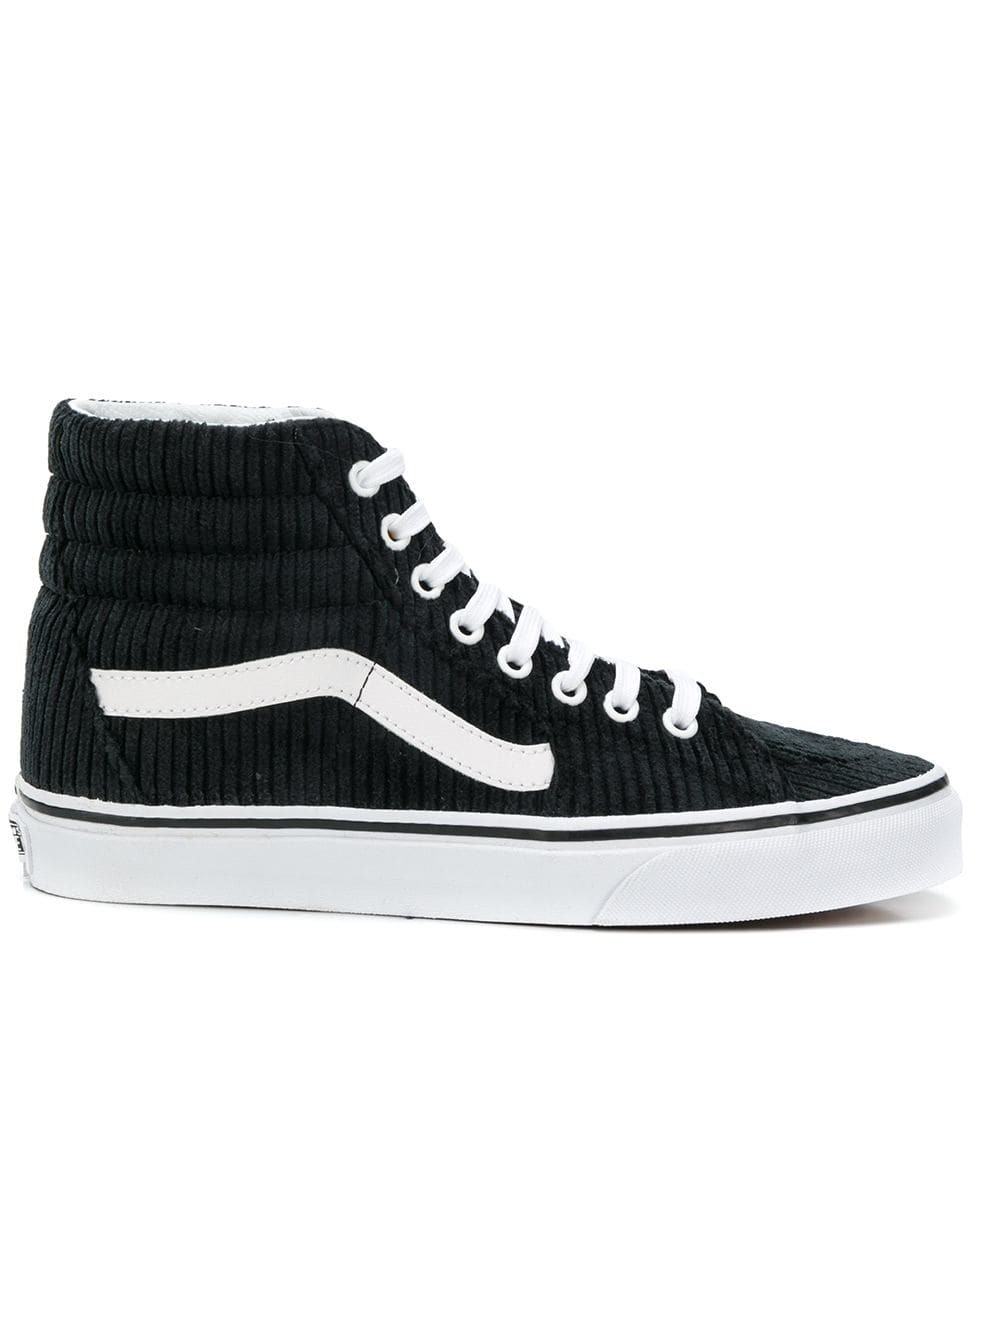 Vans Design Assembly Sk8-Hi Sneakers VA38GEU55 Noir